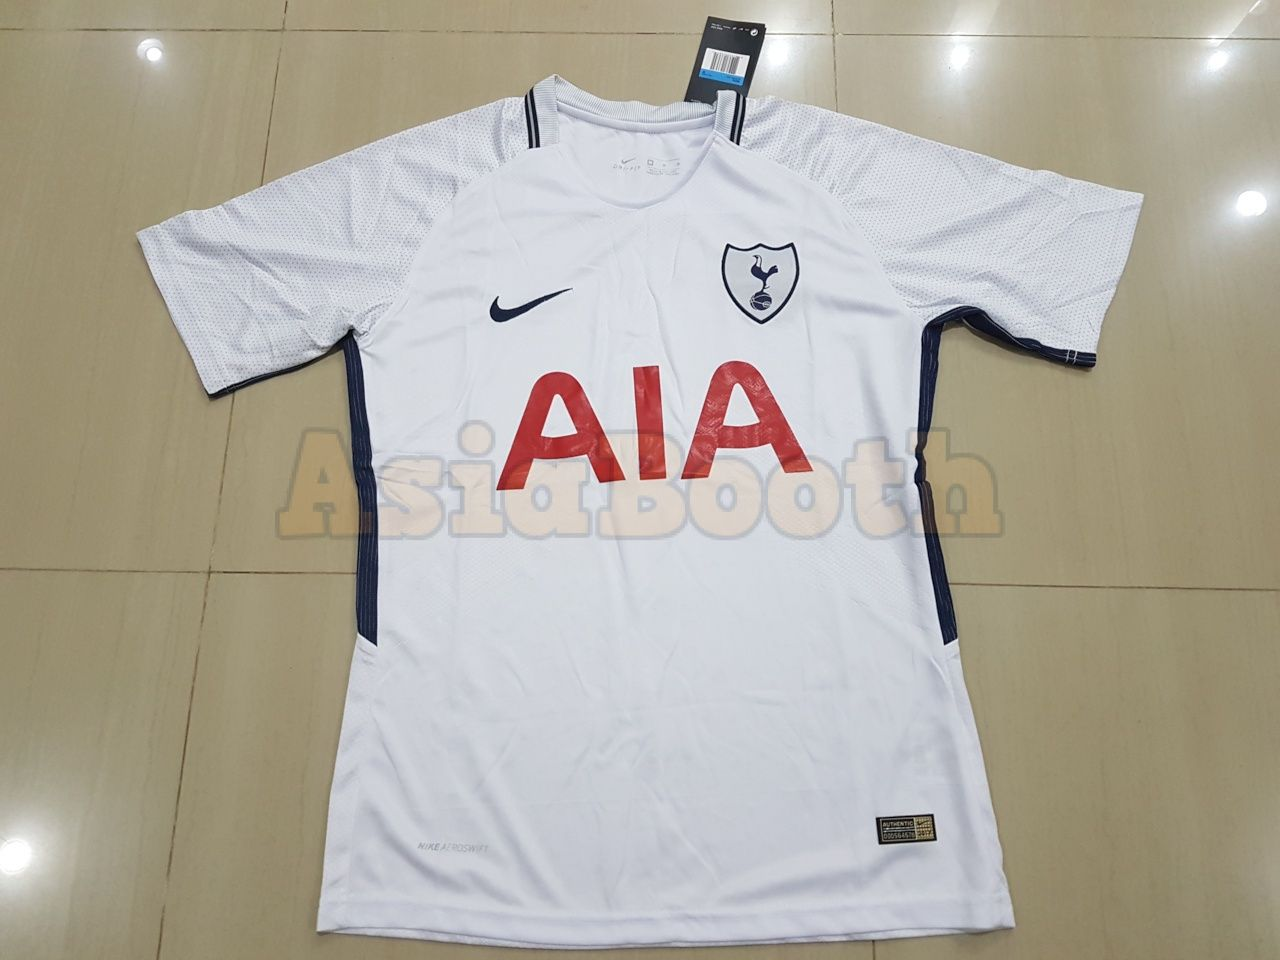 2017 2018 Tottenham Hotspur Home Jersey For Men Harry Kane Asia Booth